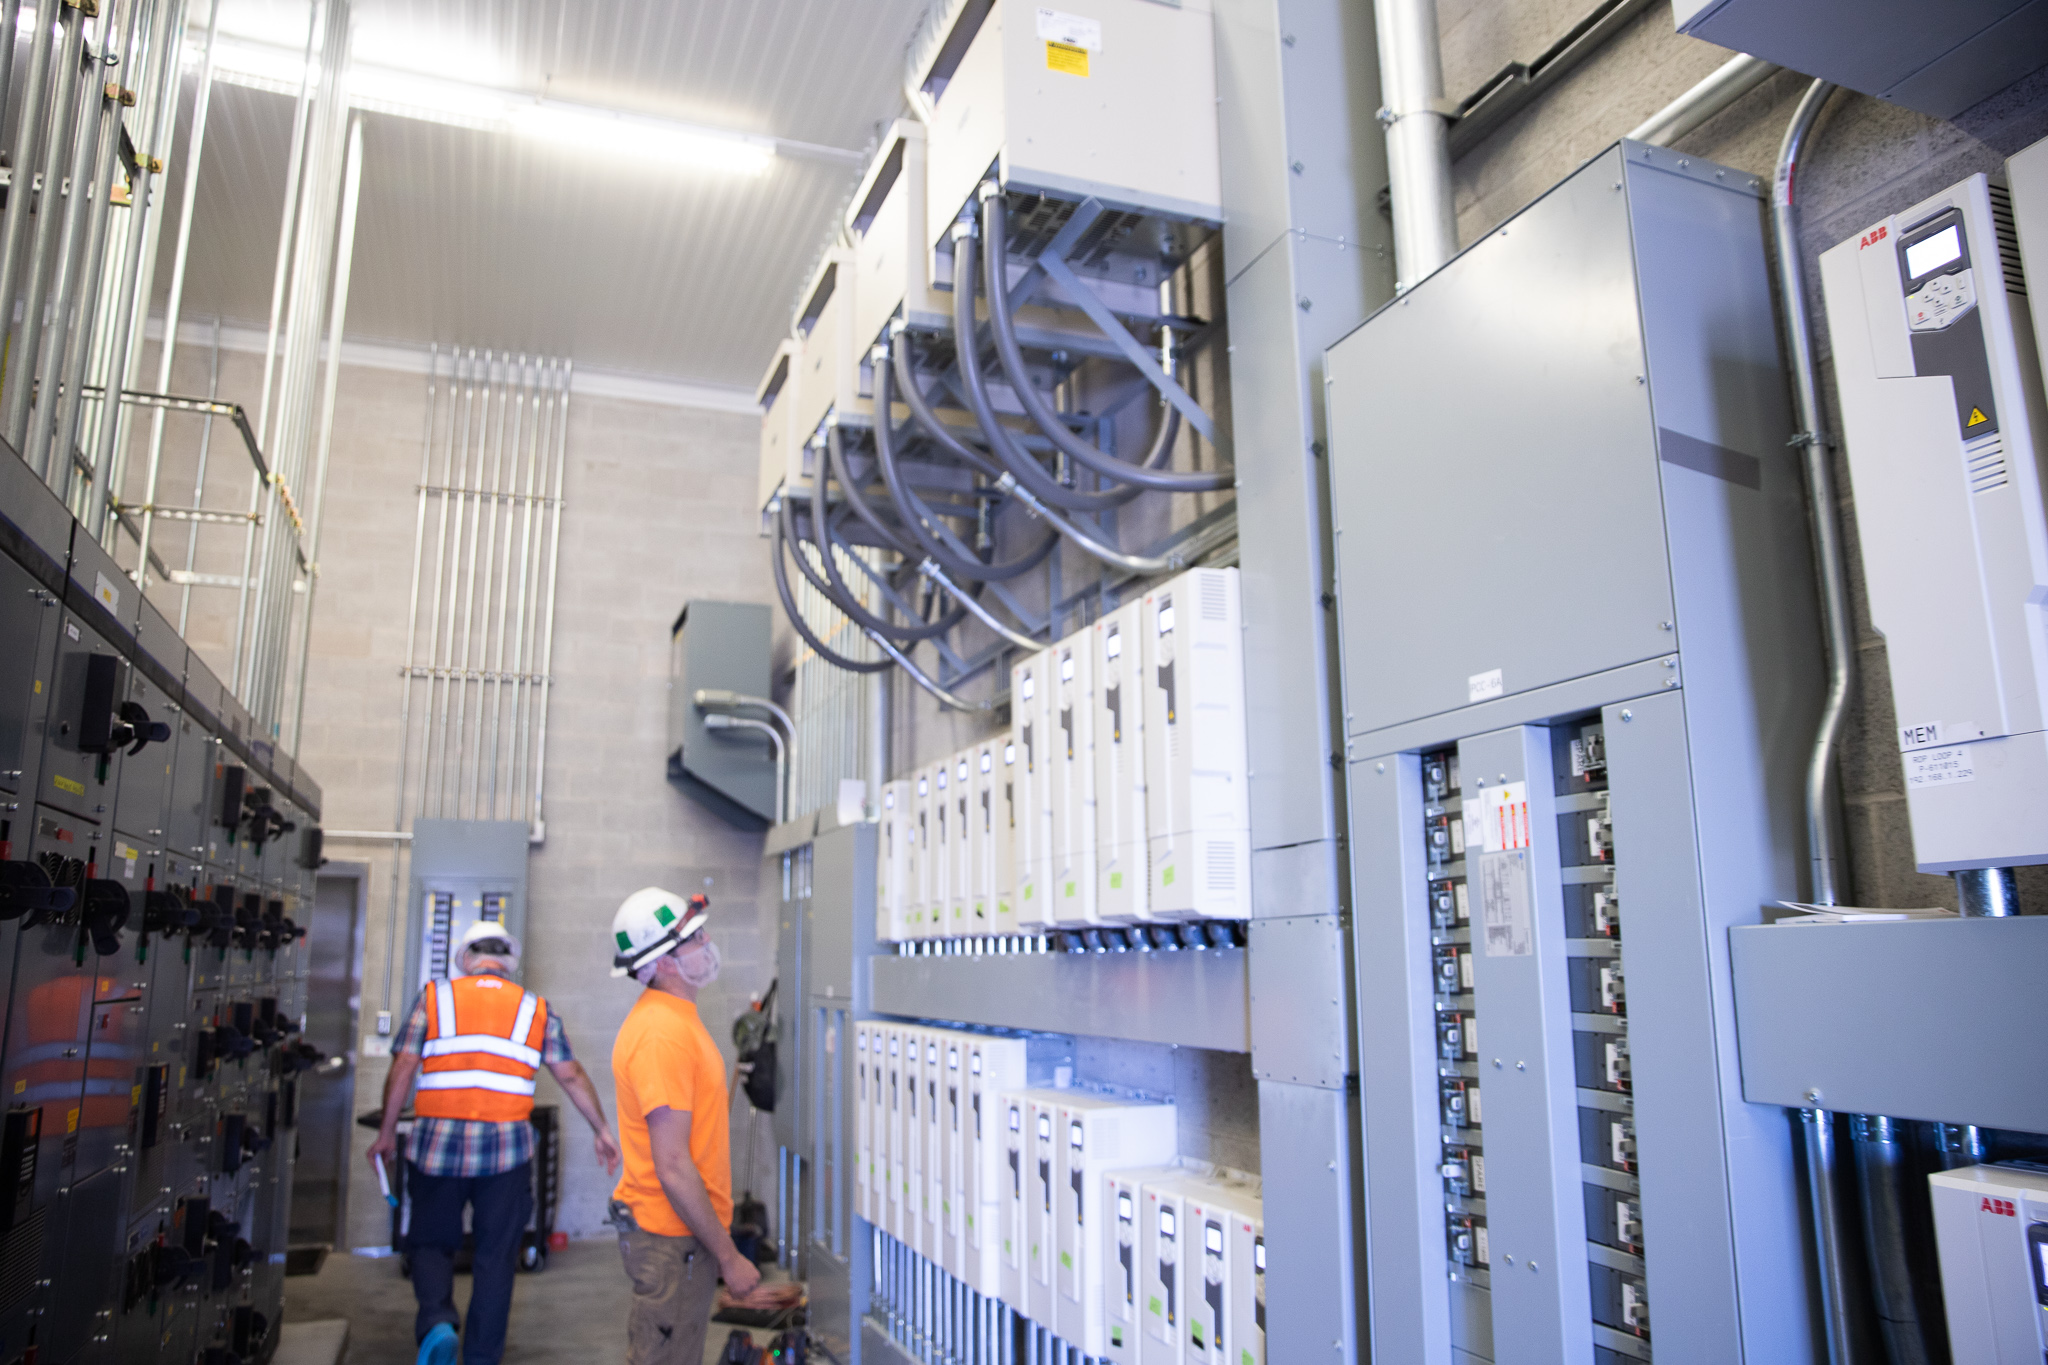 Image: 2 electricians examine industrial electrical boxes